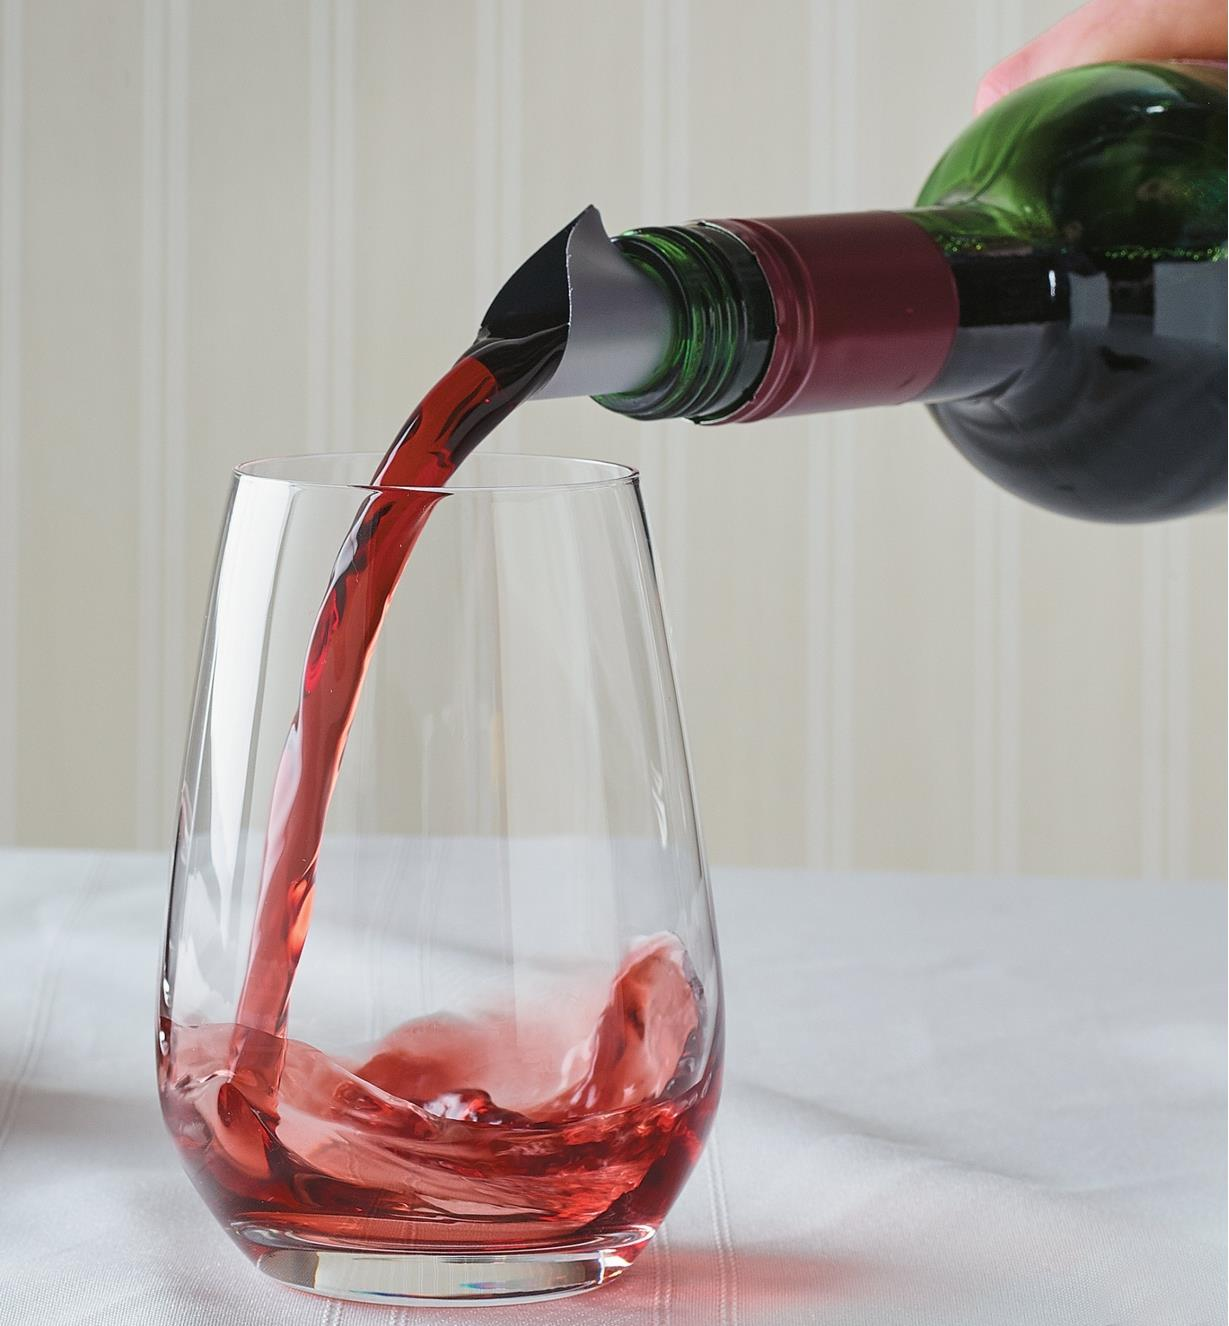 Pouring wine into a glass from a bottle fitted with a wine disc